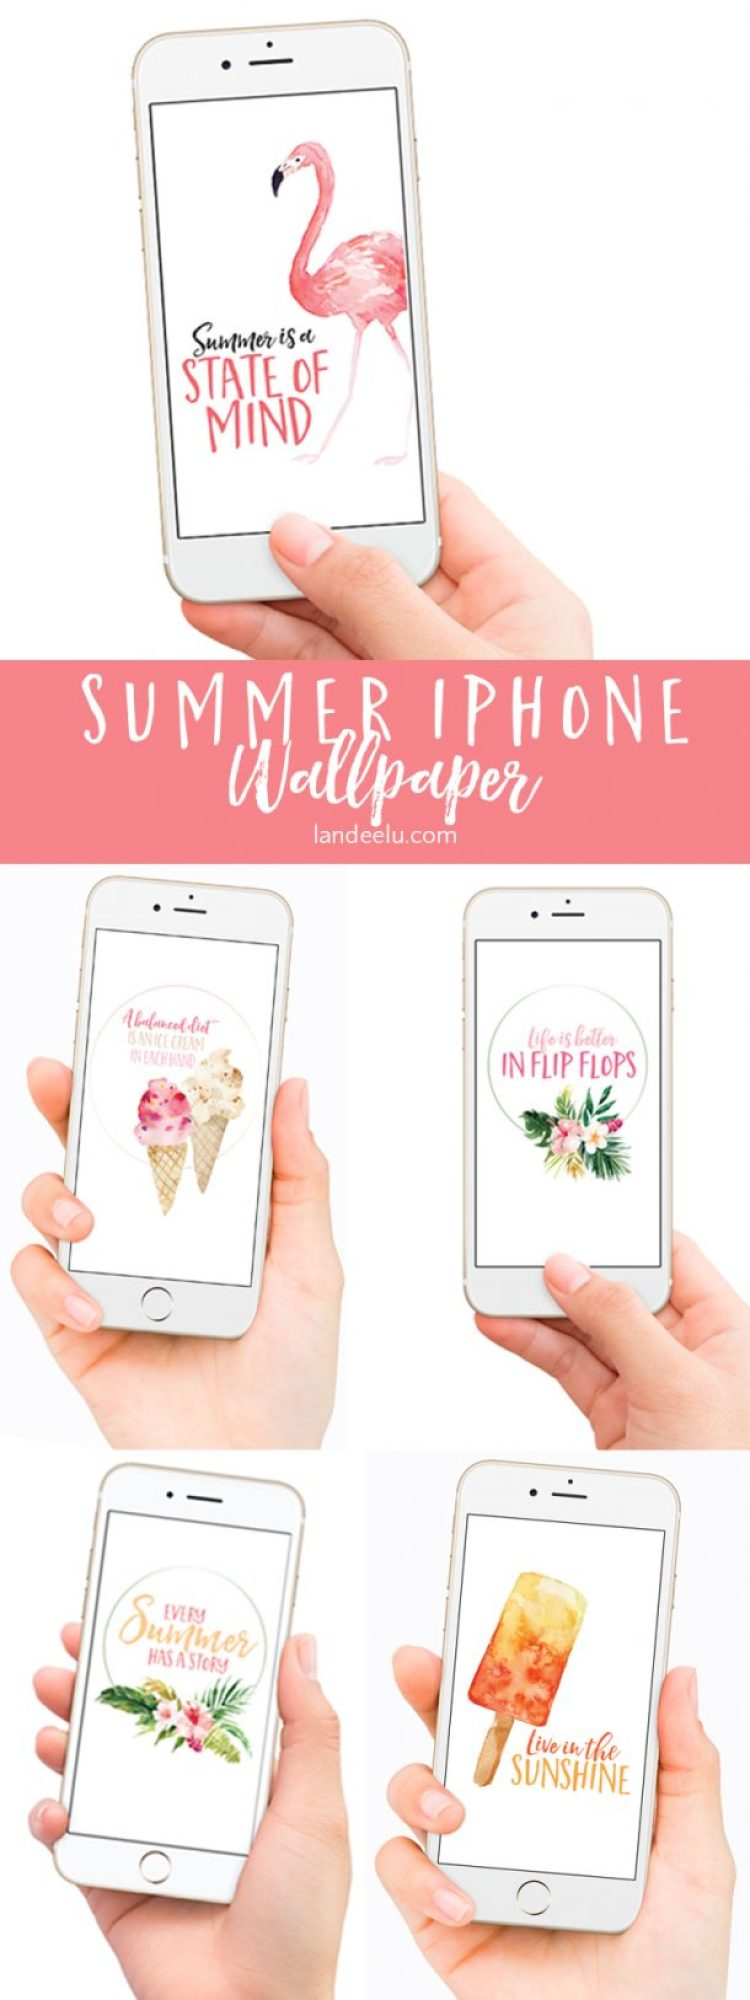 Change your iPhone wallpaper to go with the seasons! Darling summer iPhone wallpapers... 5 different designs!